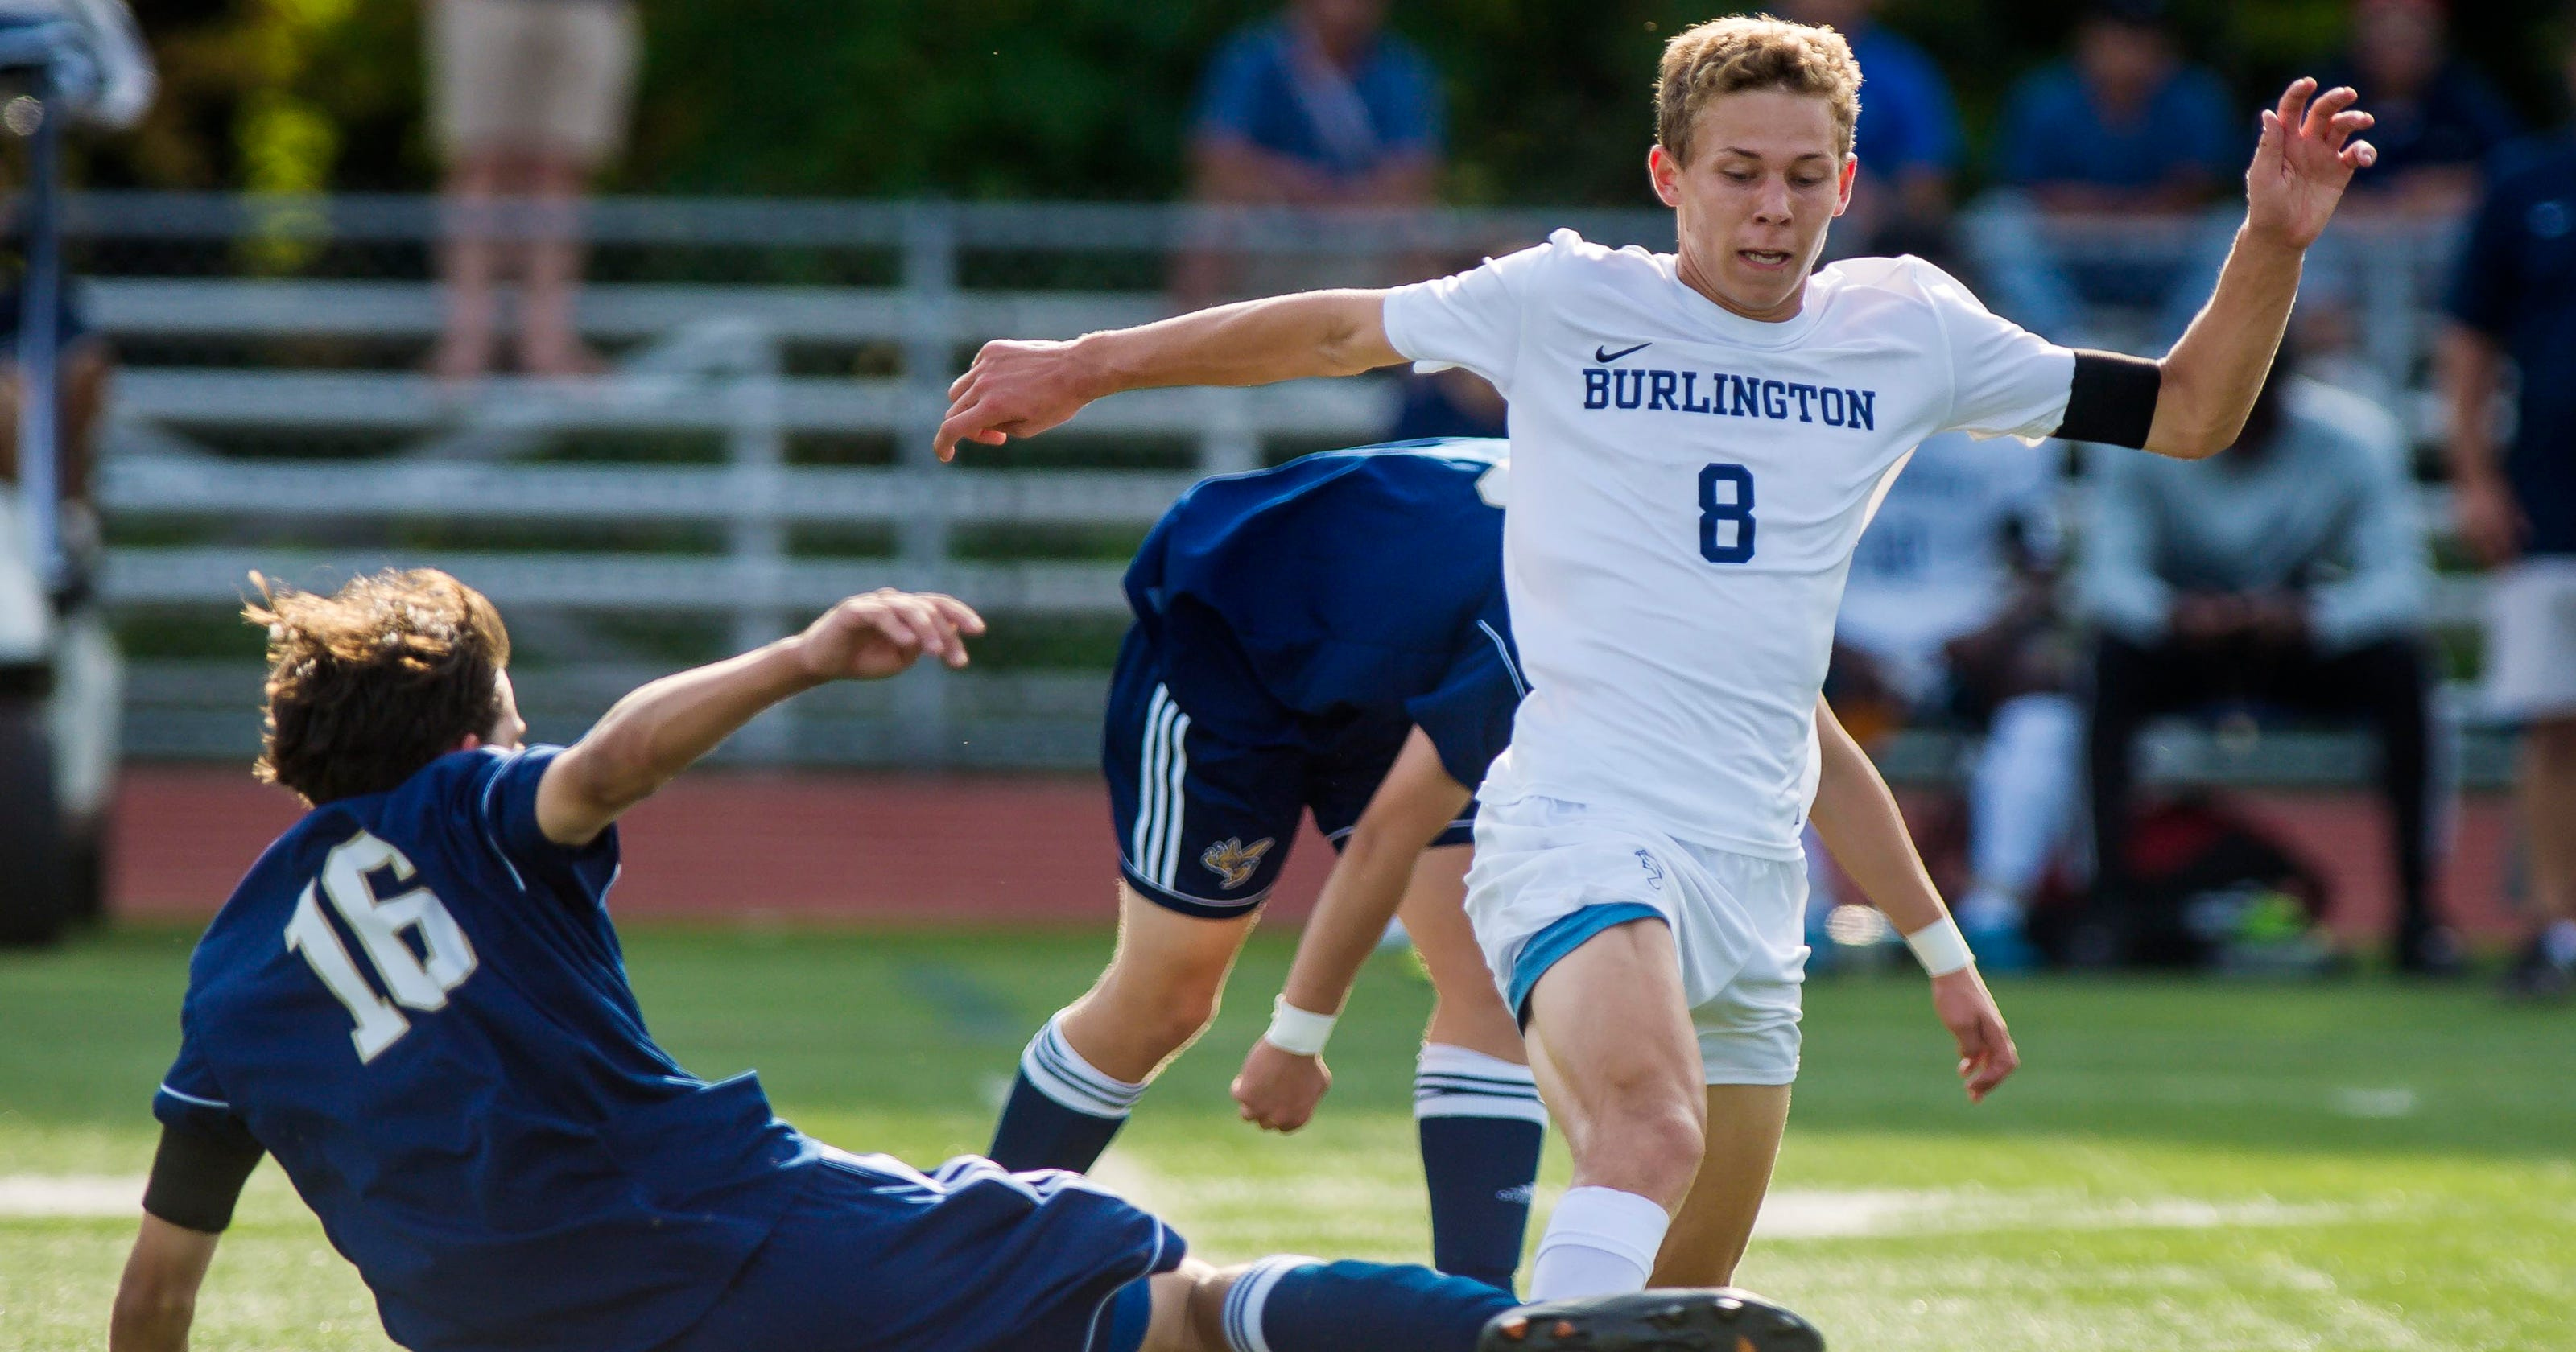 Varsity Insider: Week 4 boys soccer power rankings